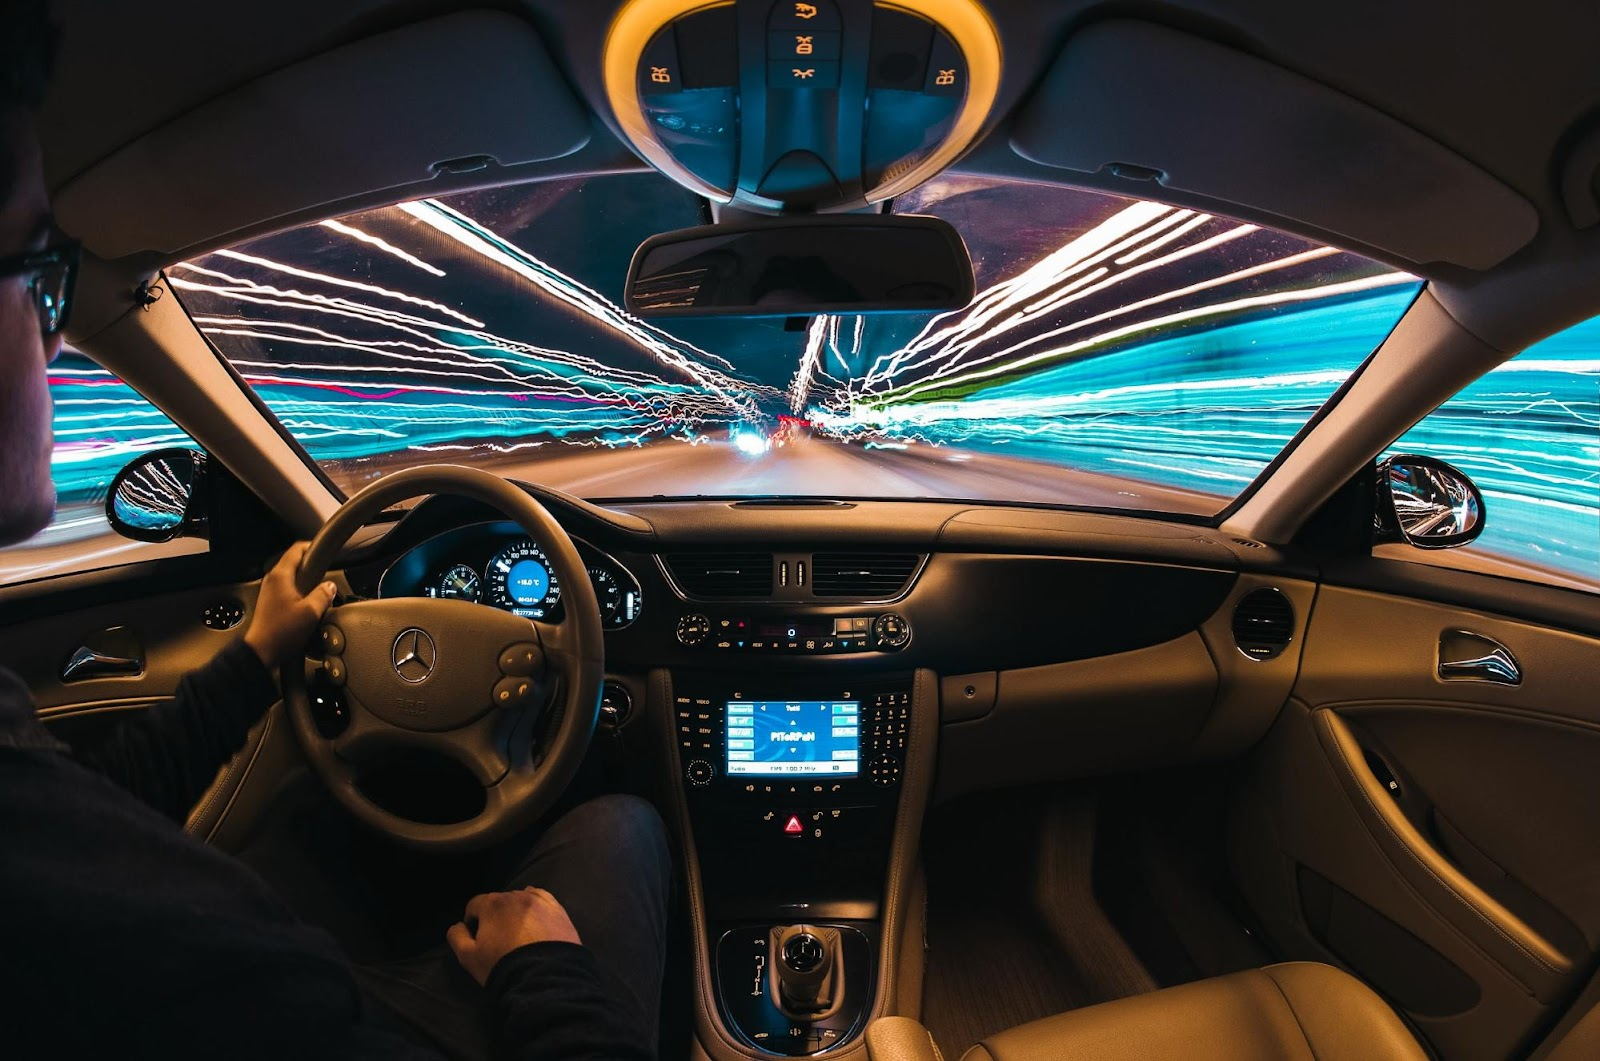 A long exposure, wide angle, car interior photo